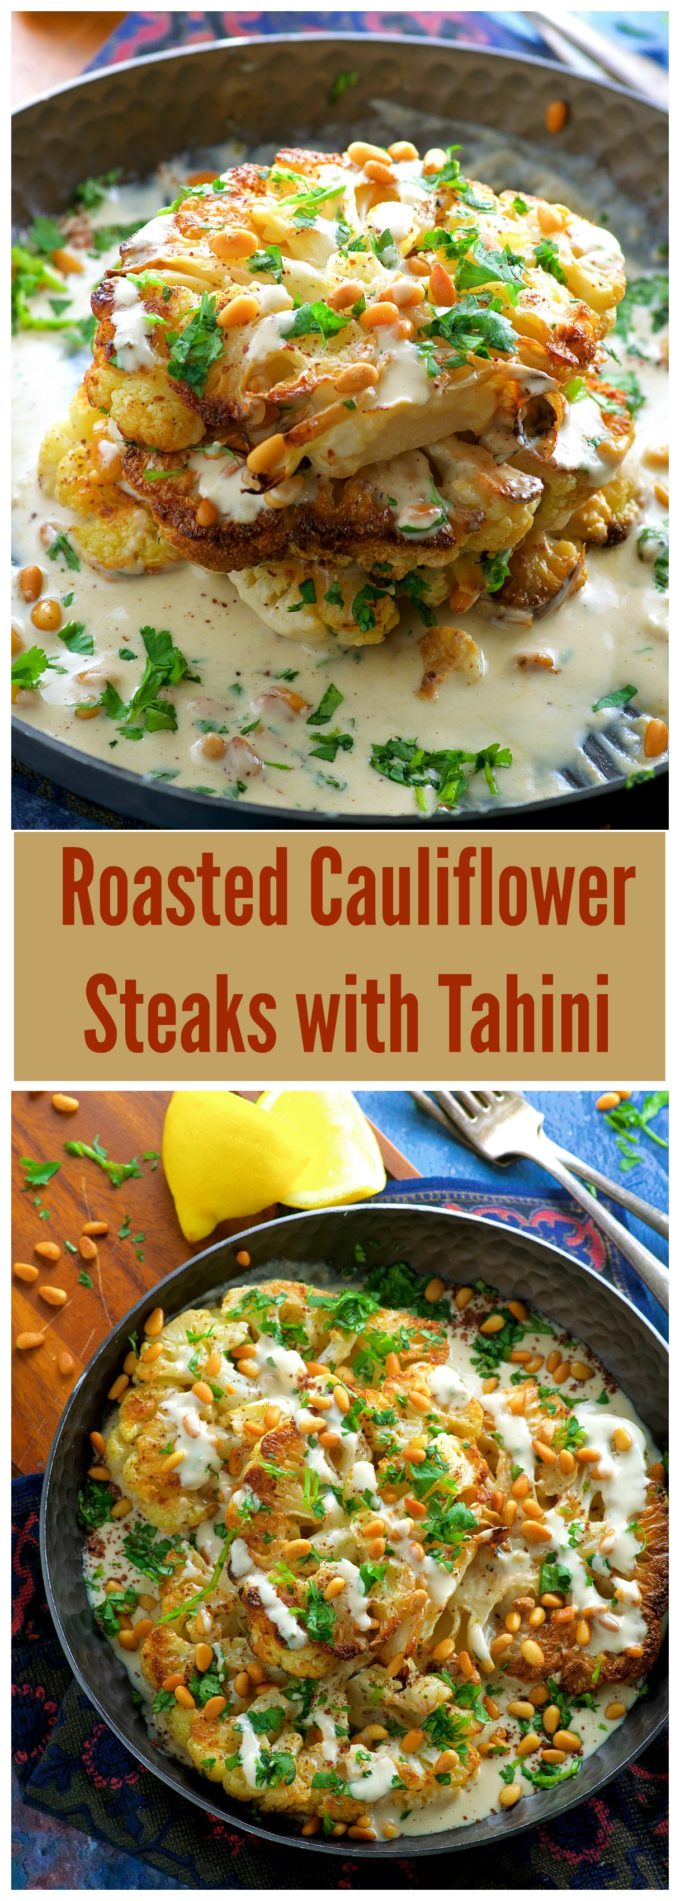 Roasted Cauliflower Steak with Tahini and Pine Nuts - It tastes fried, but it is baked! Check out this delicious recipe!